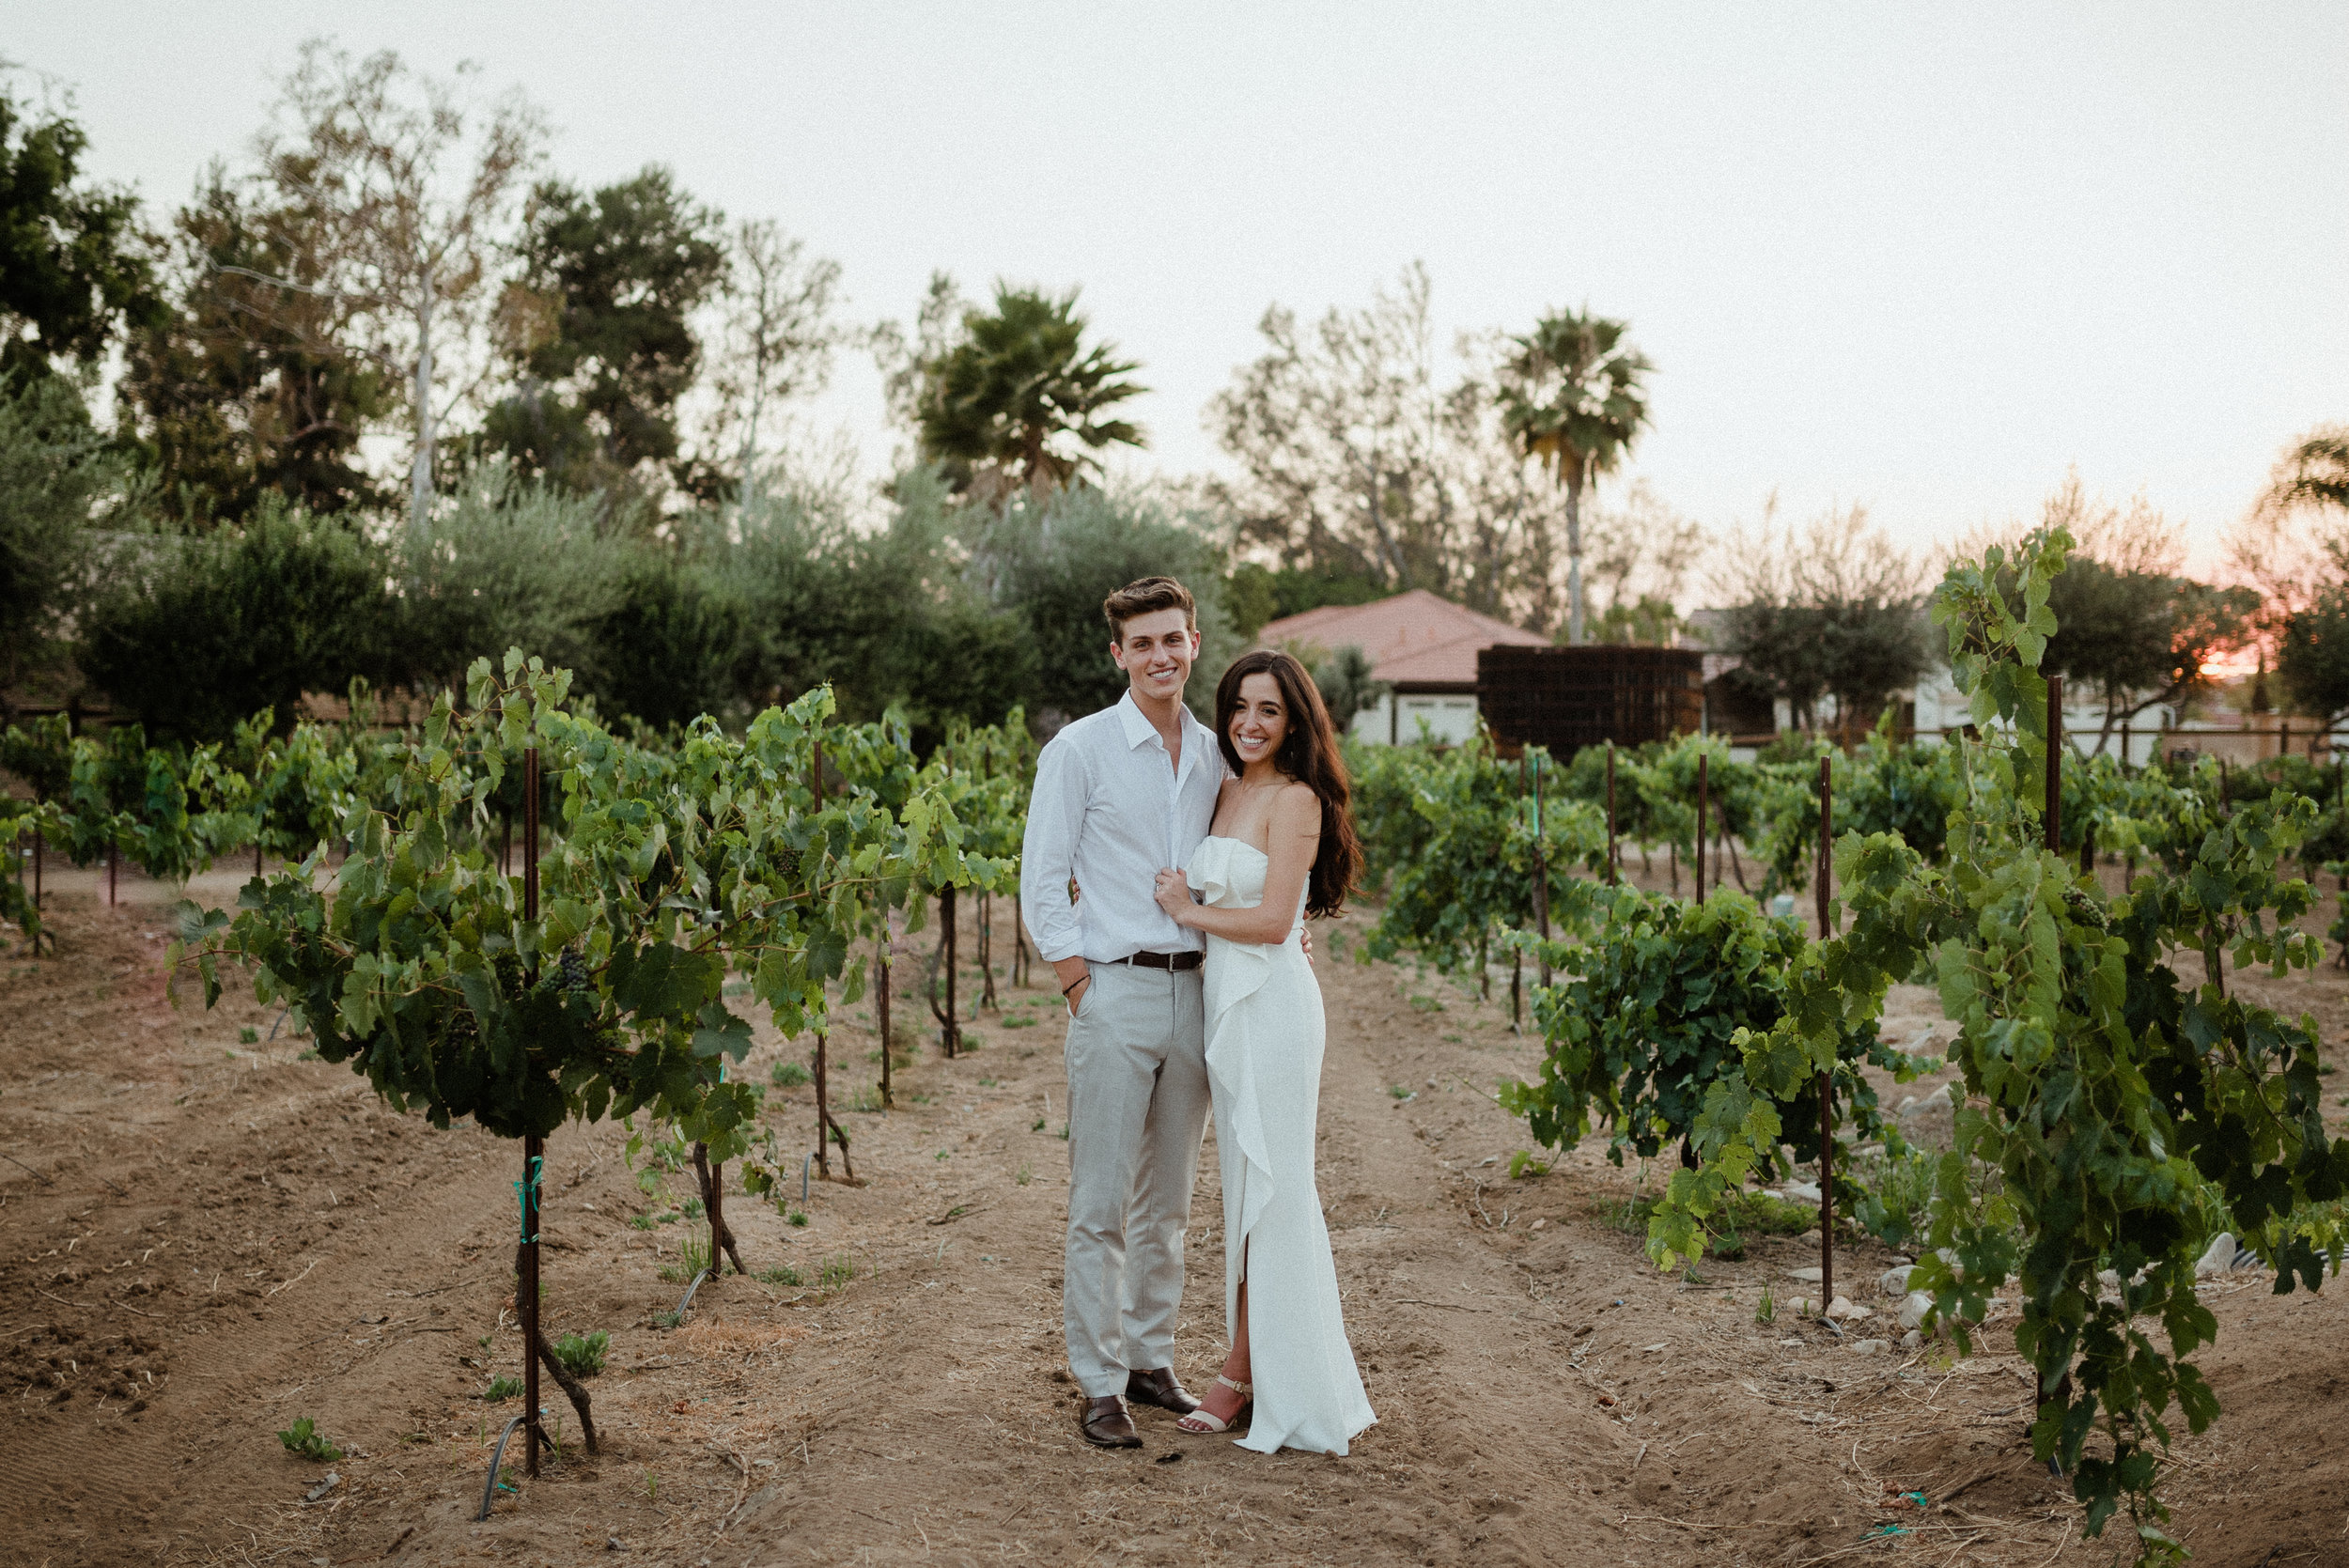 SanDiego-California-Bernardo-Winery-WashingtonDC-wedding-photographer-earthy-desert-wedding-LizRachelPhoto_0030